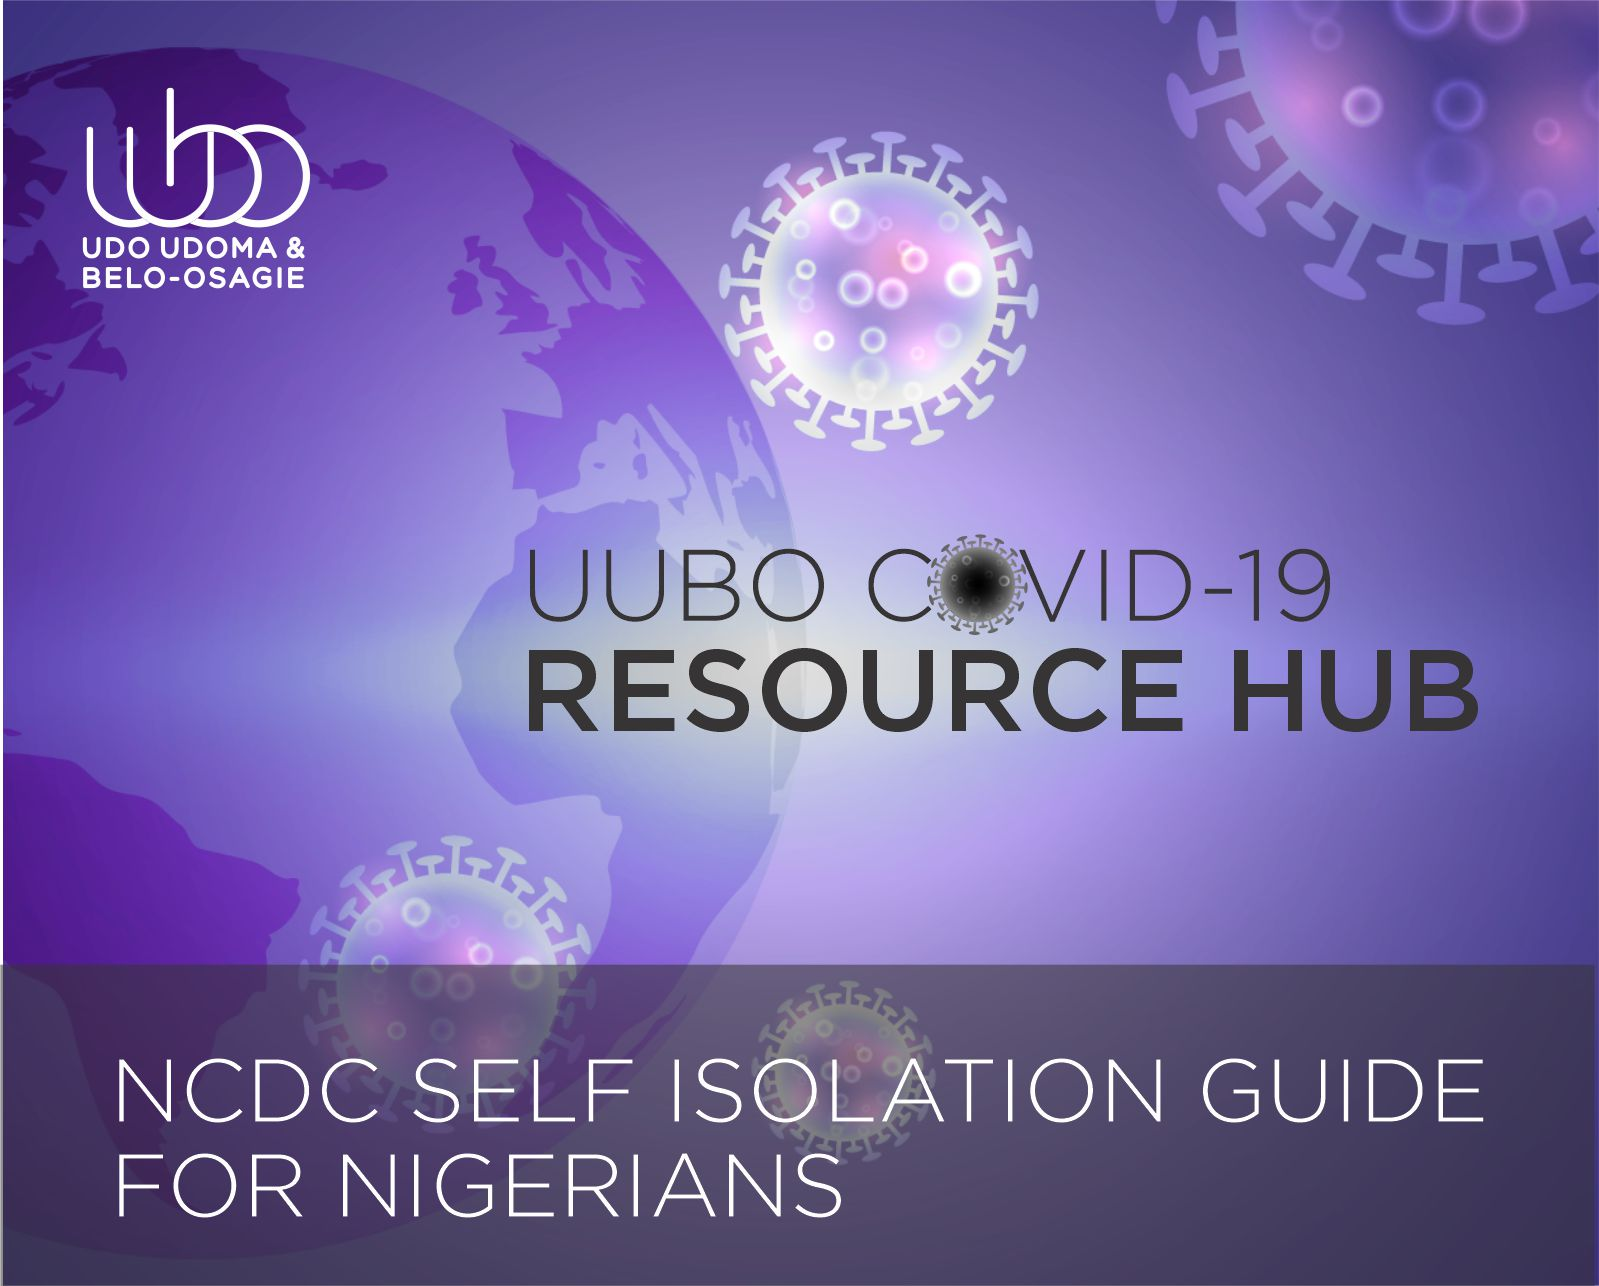 NCDC SELF ISOLATION GUIDE FOR NIGERIANS